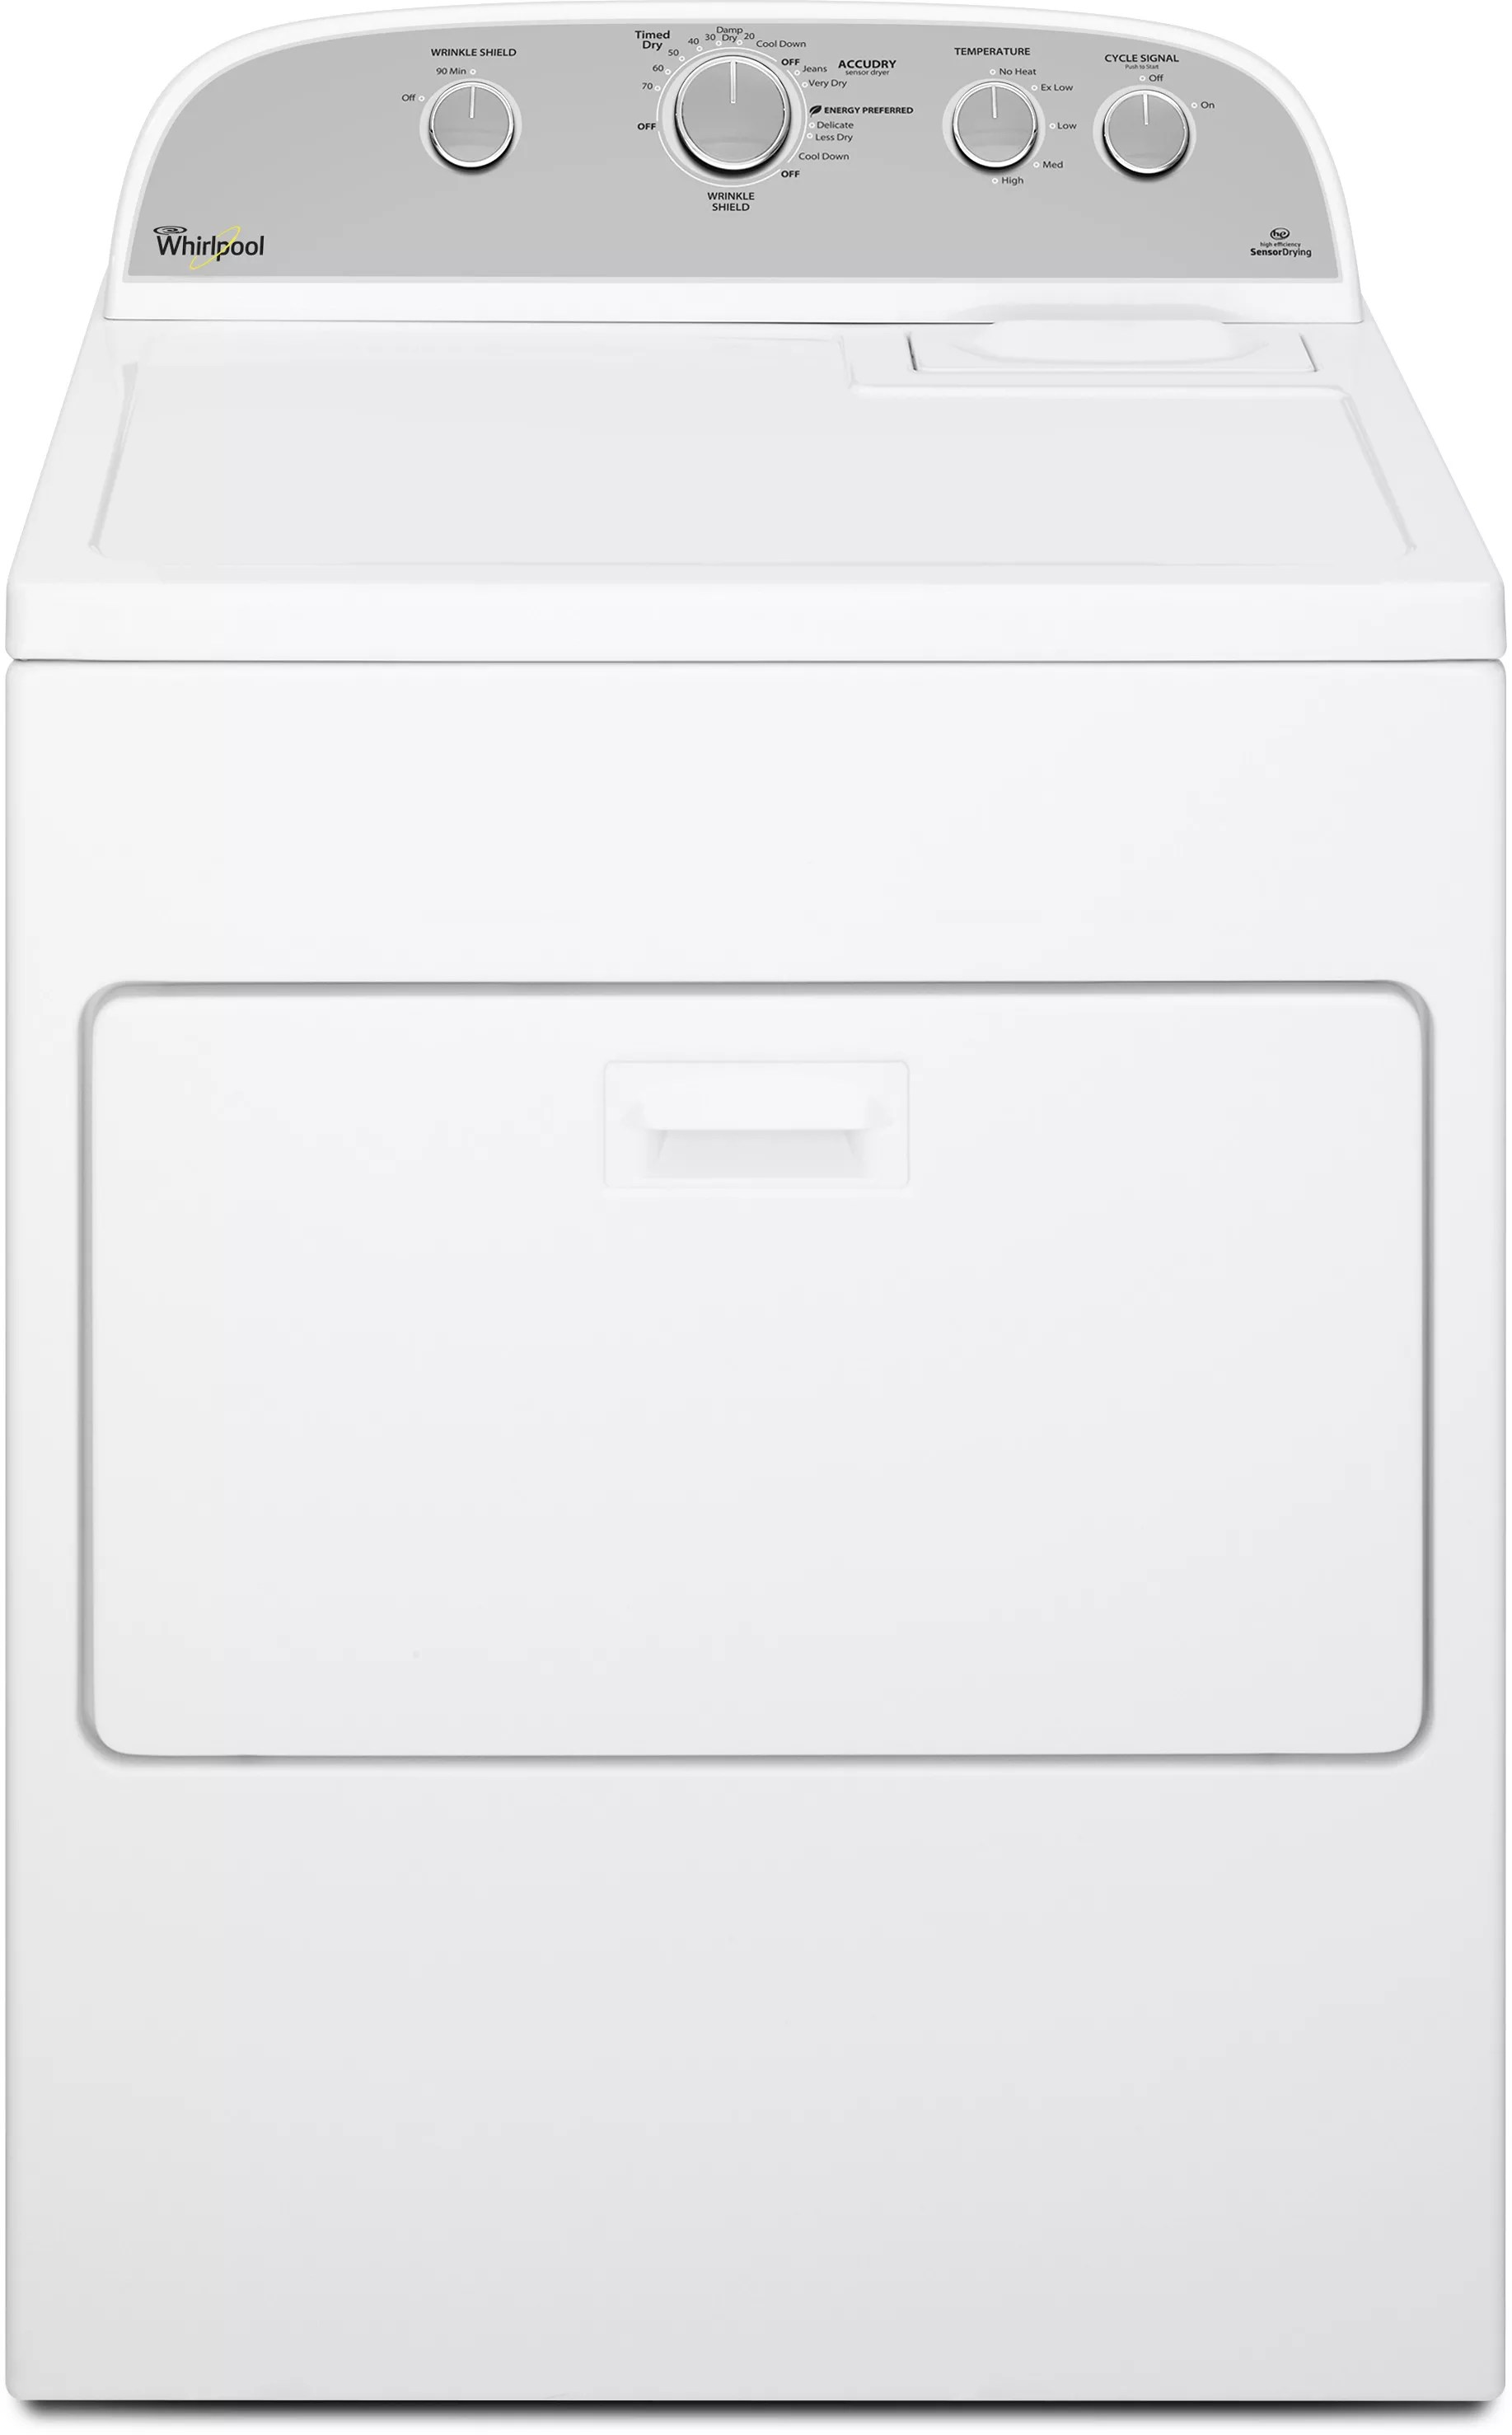 Whirlpool WTW4915EW 27 Inch 36 cu ft Top Load Washer with 12 Wash Cycles 800 RPM Quick Wash